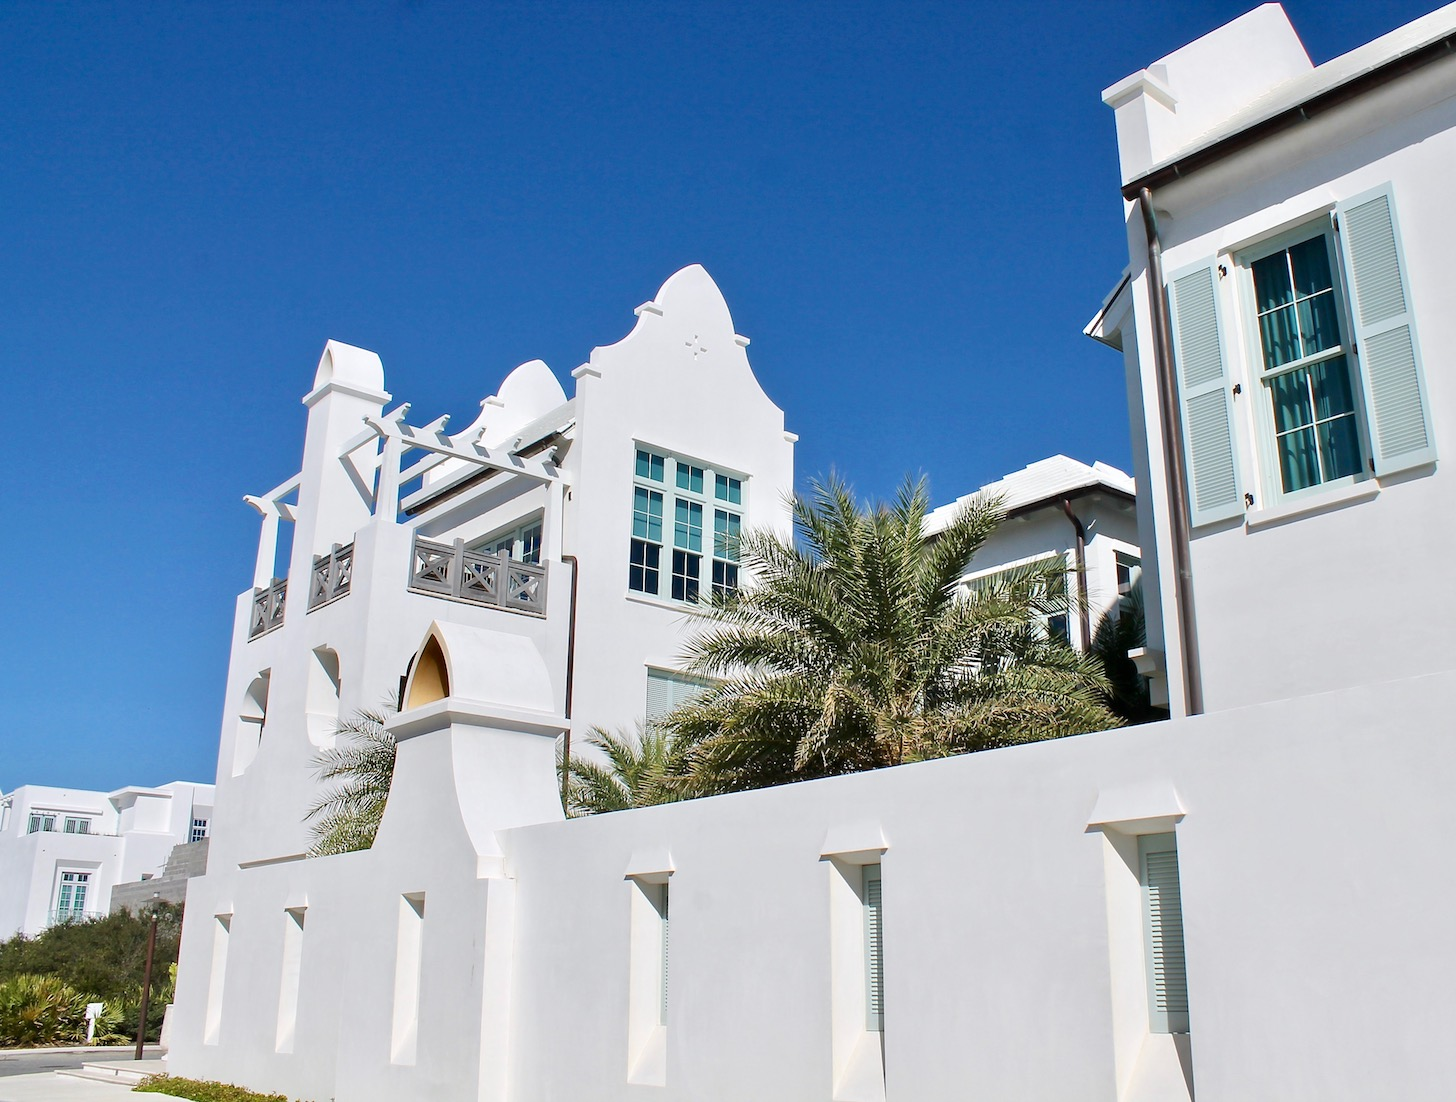 Explore the gorgeous streets and residential houses of Alys Beach, FL.